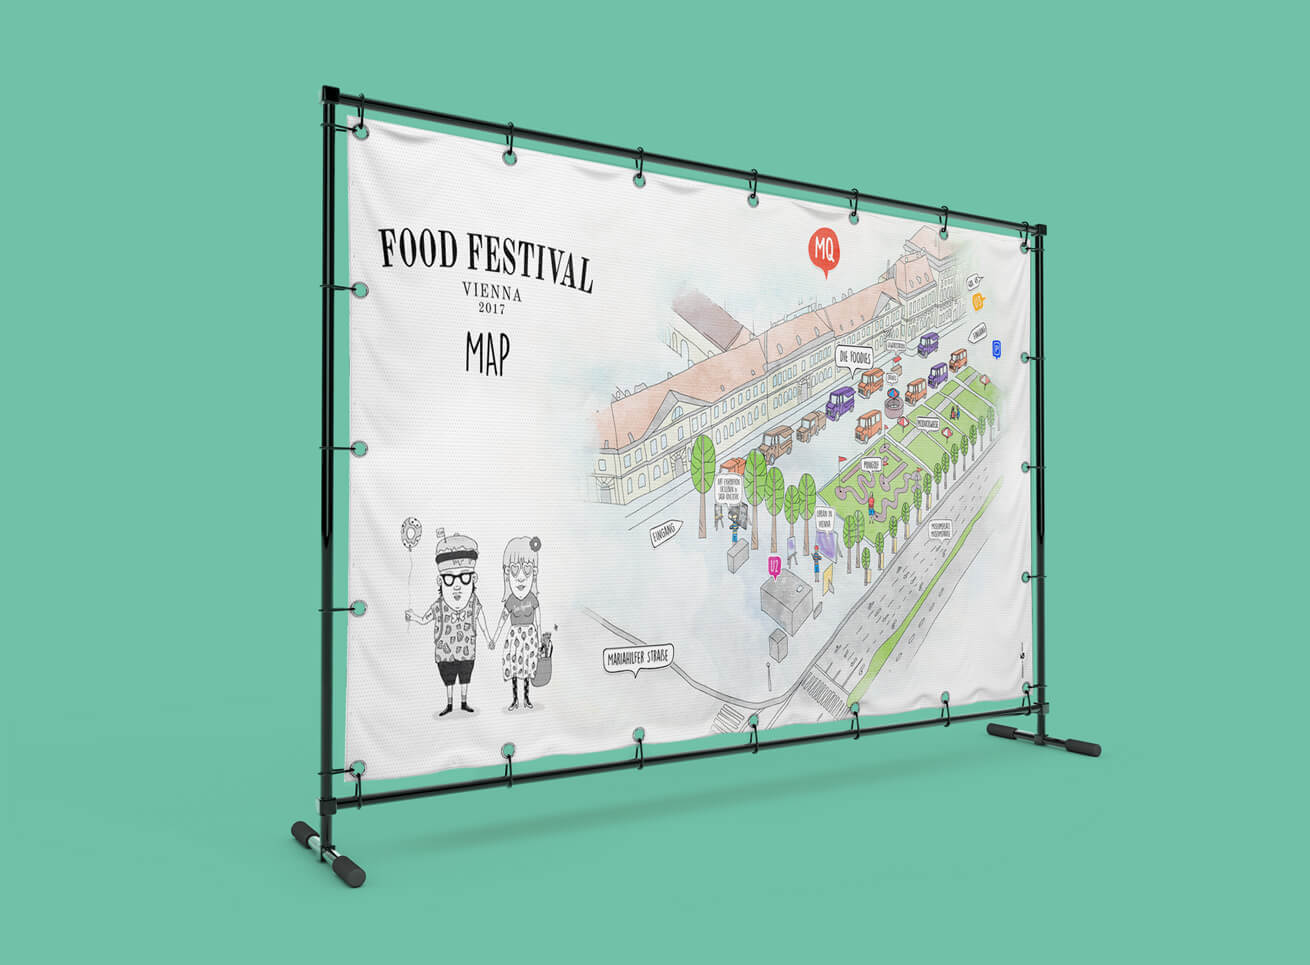 Food Festival Plan Speisekarte Grafikdesign